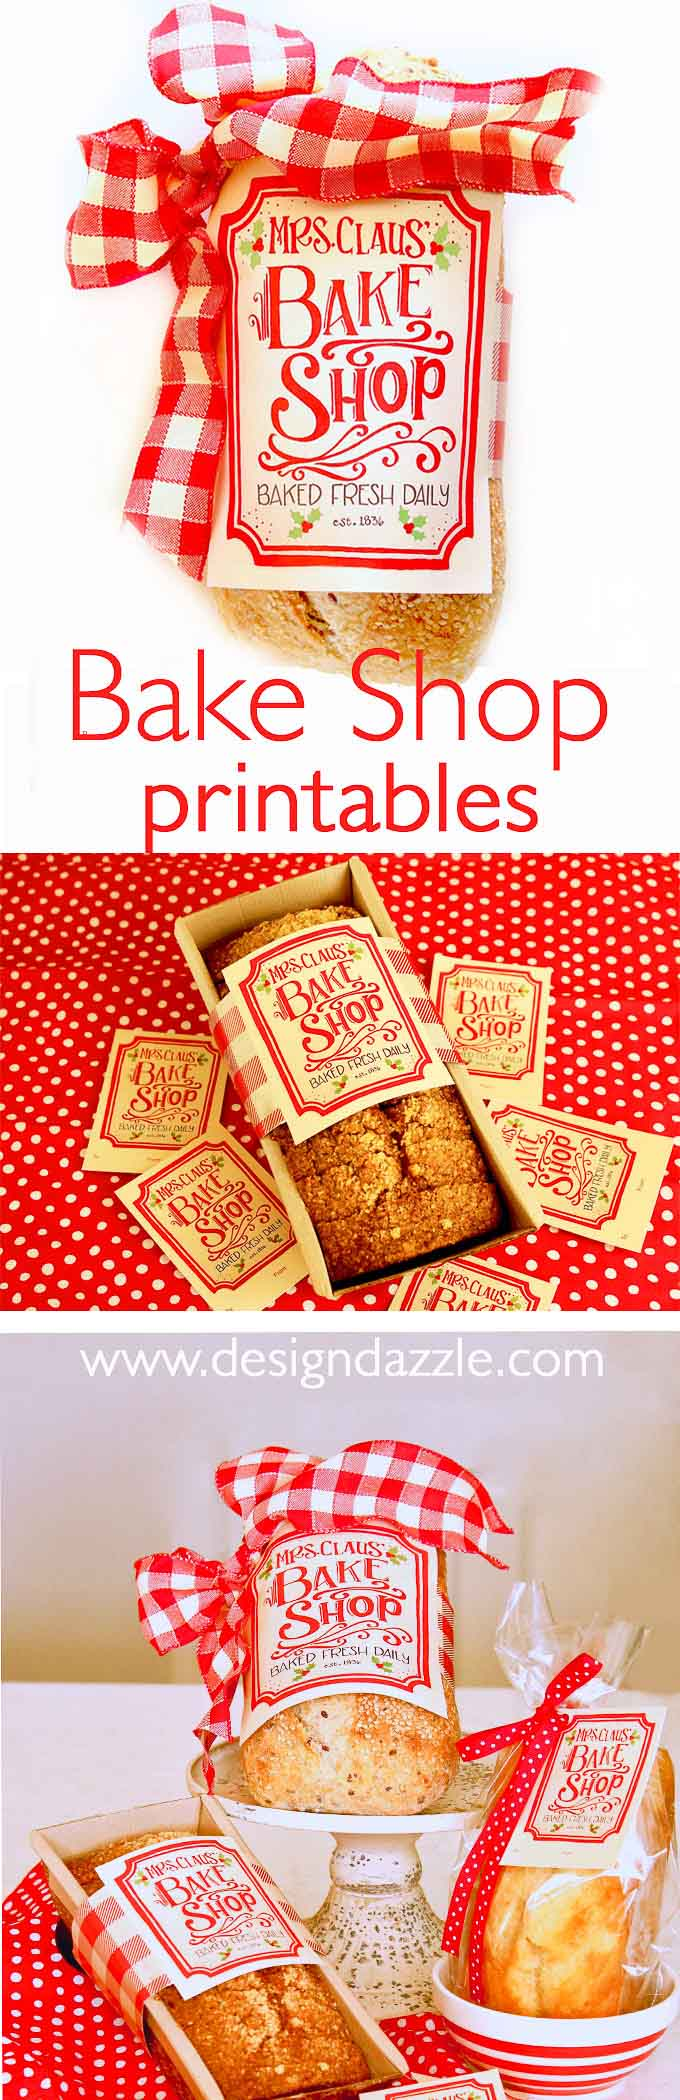 Mrs. Claus Bake Shop Sign & Printables! Check out these cute printable ideas for your Christmas baking and neighbor holiday gifts! #christmasbaking #printables || Design Dazzle